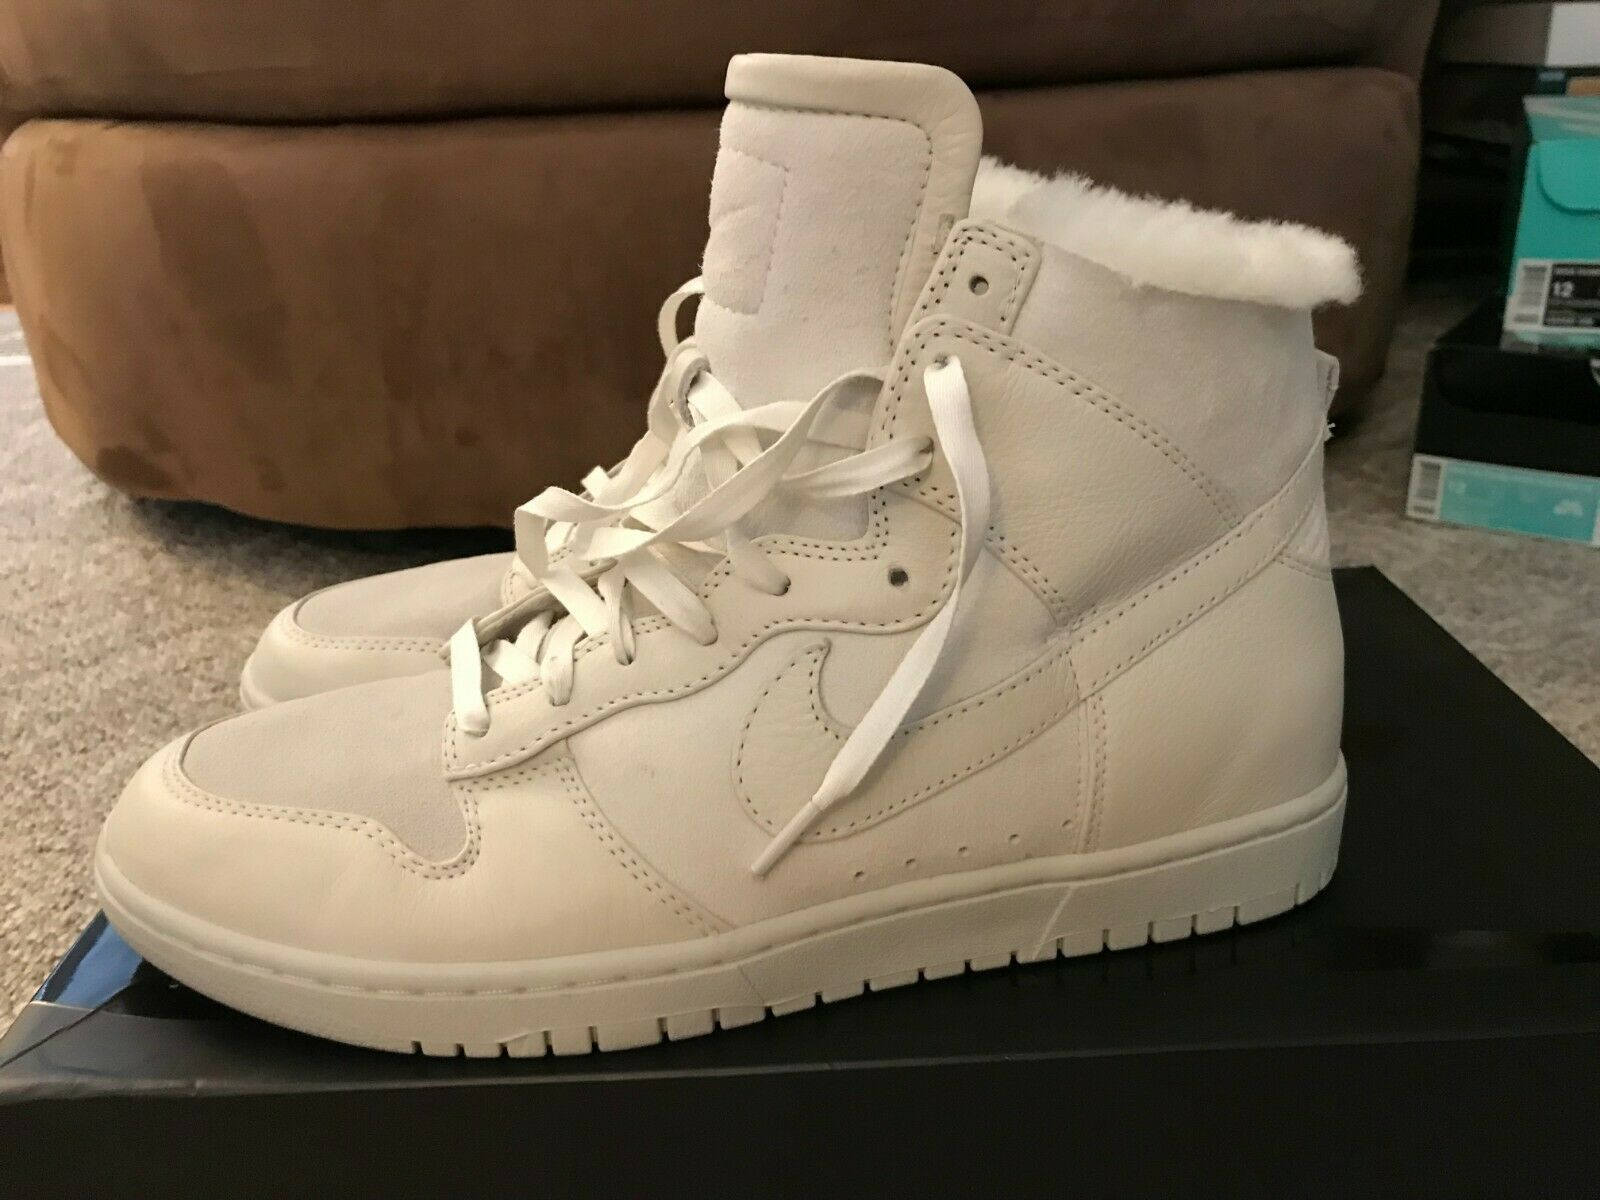 Melodramático altura Oficiales  Nike Real Air Force 1 Pink Shoes Free Limited Gunmetal Grey Nike ...